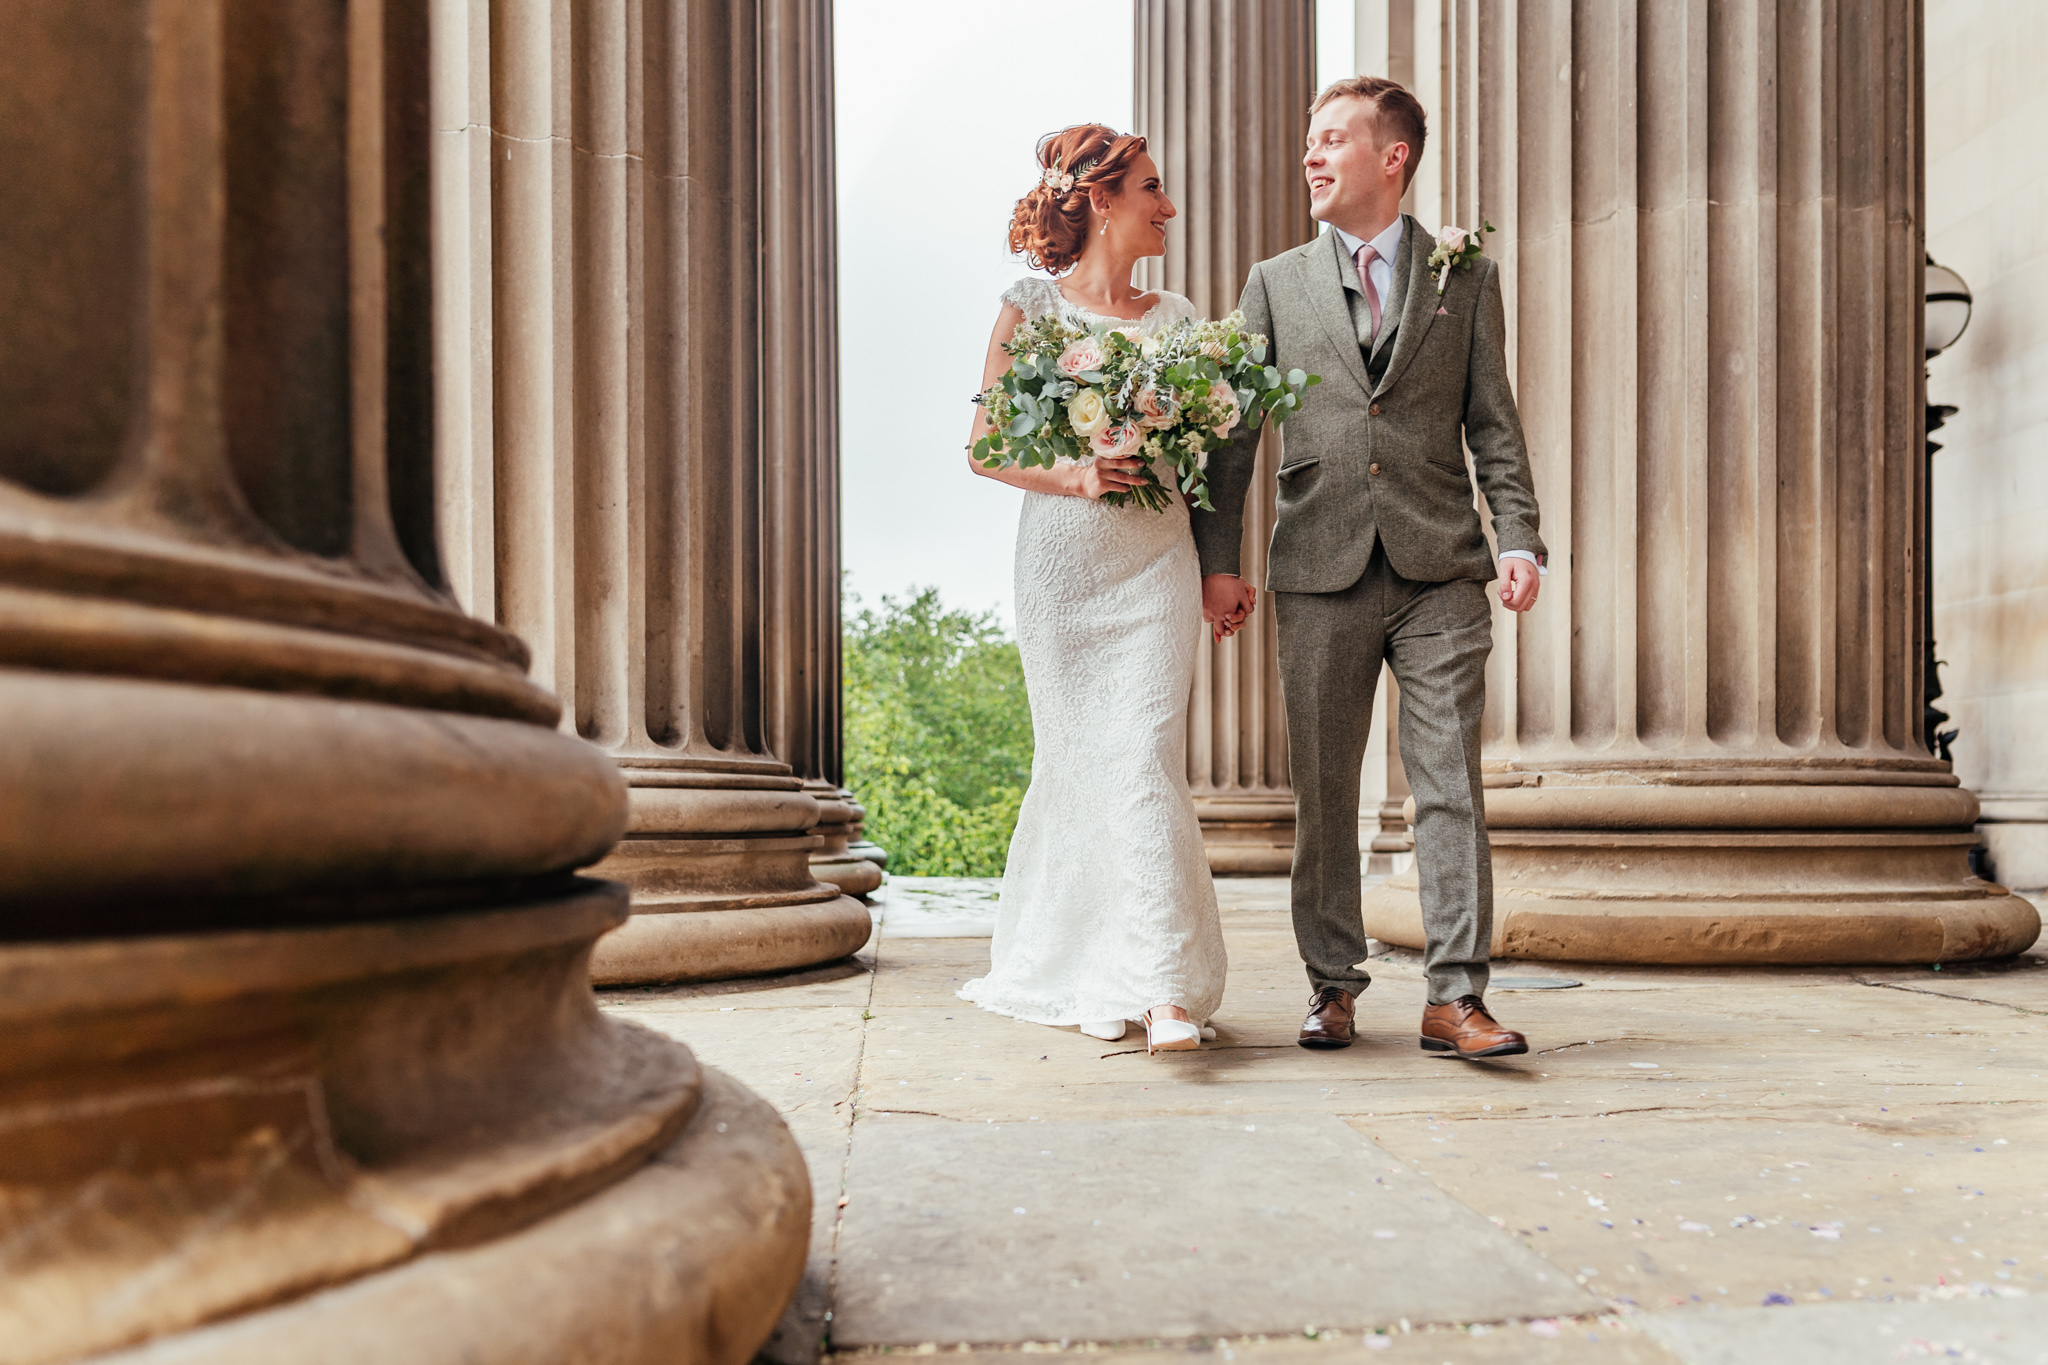 Bride and Groom photograph walking hand in hand through the pillars outside St George's Hall in Liverpool City Centre